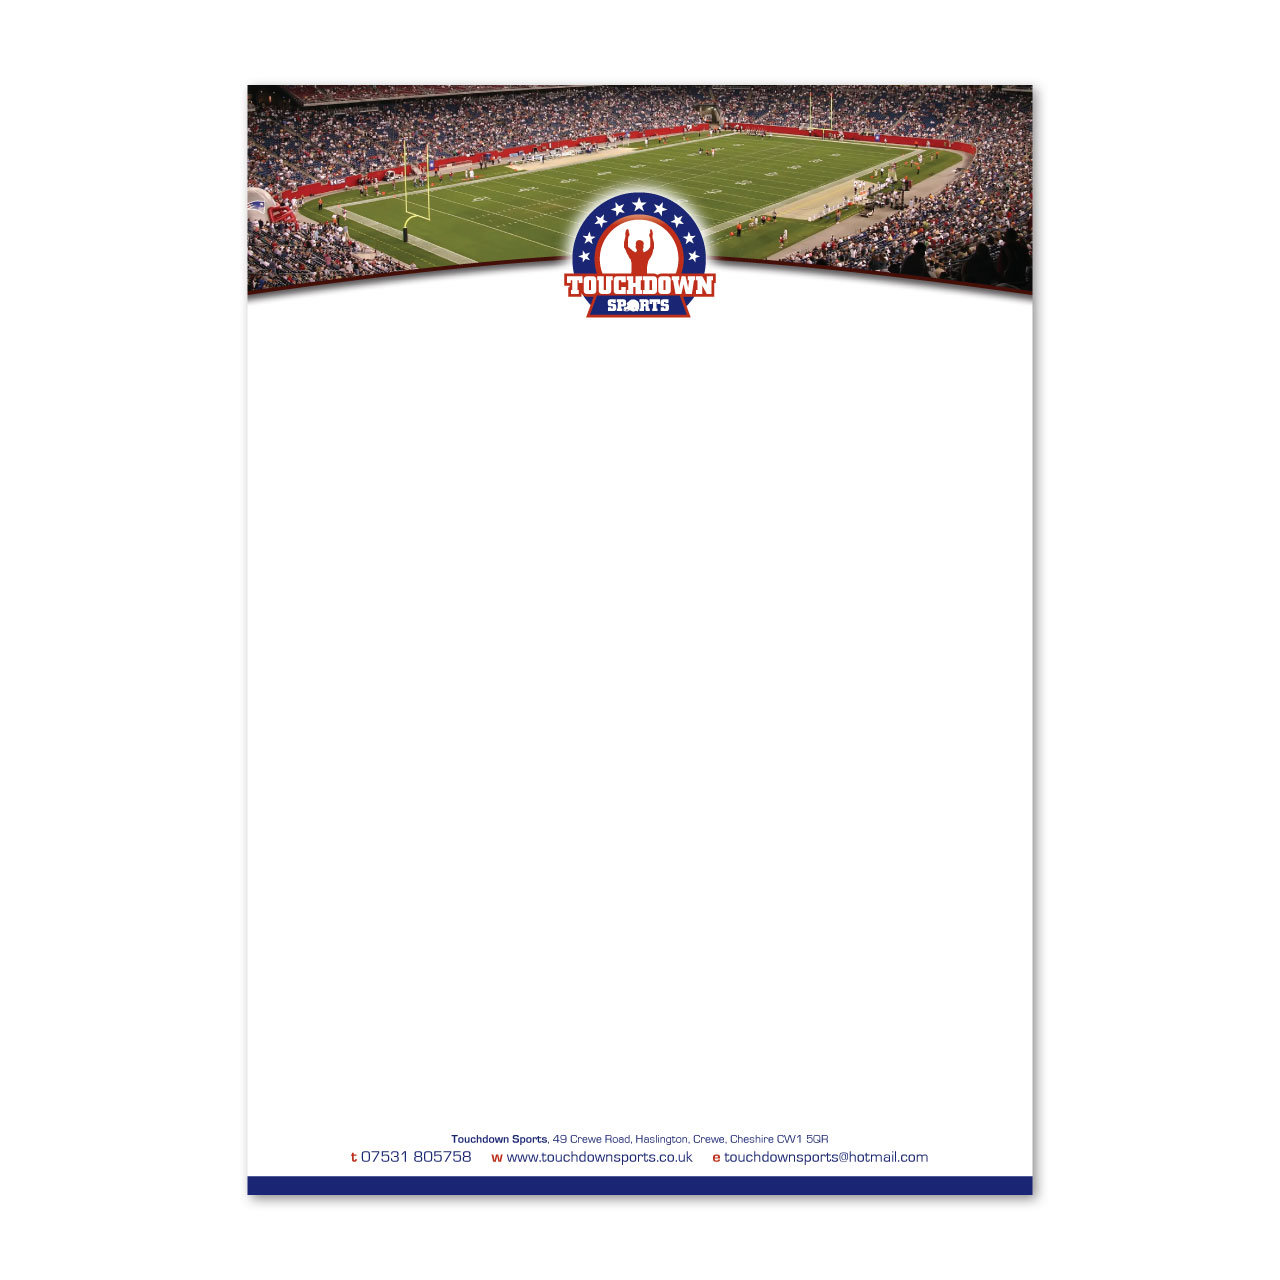 Touchdown Sports letterhead design